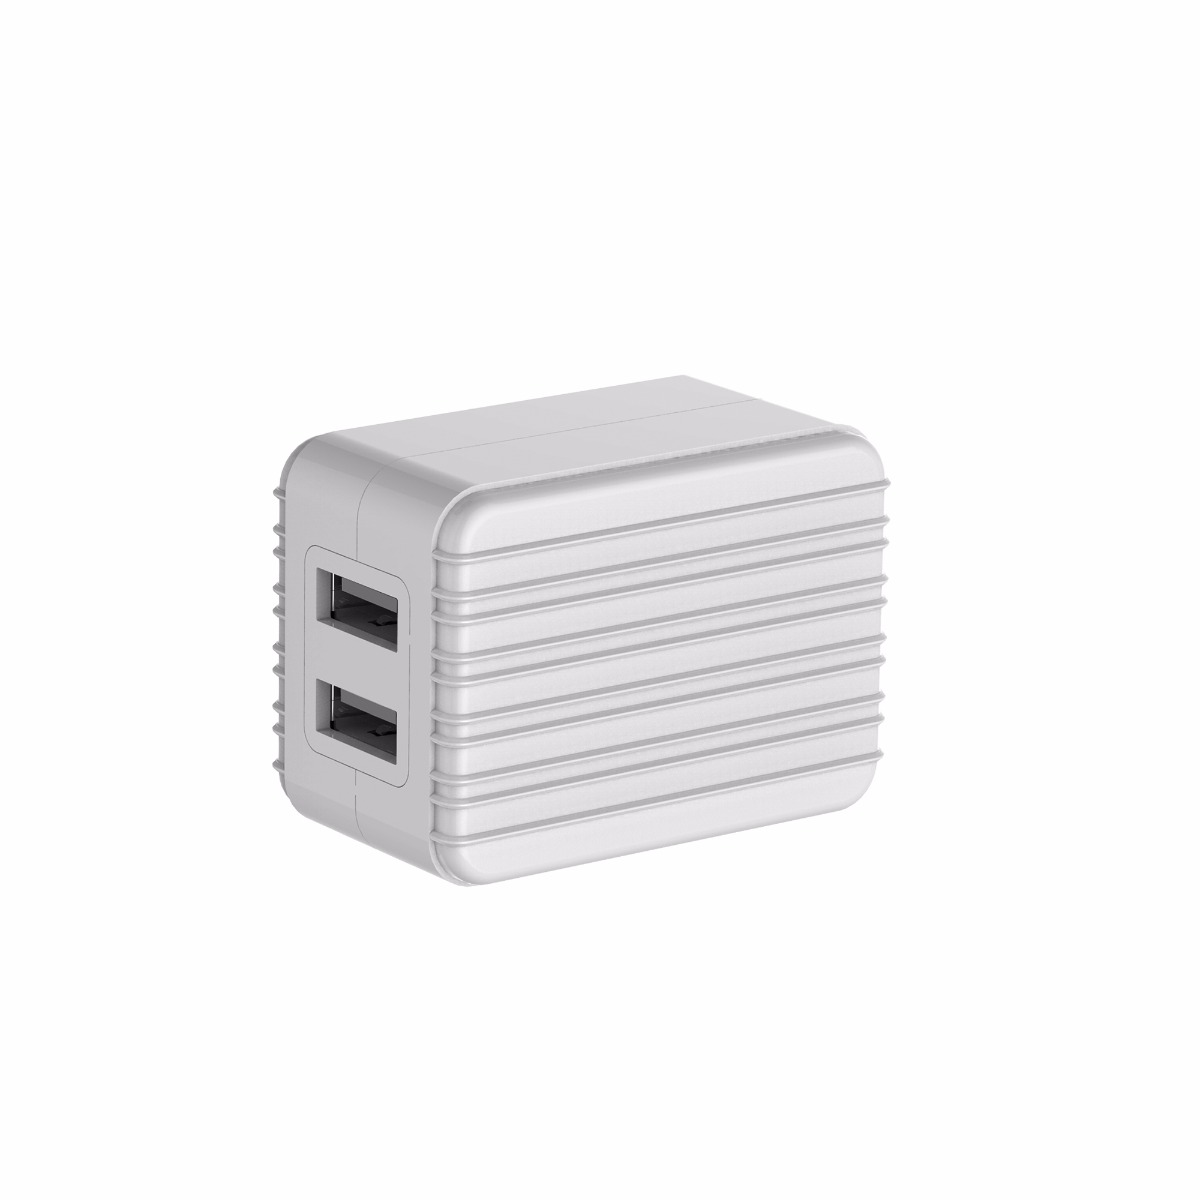 Patch Panda 2U USB Wall Adapter for Mobile Phone